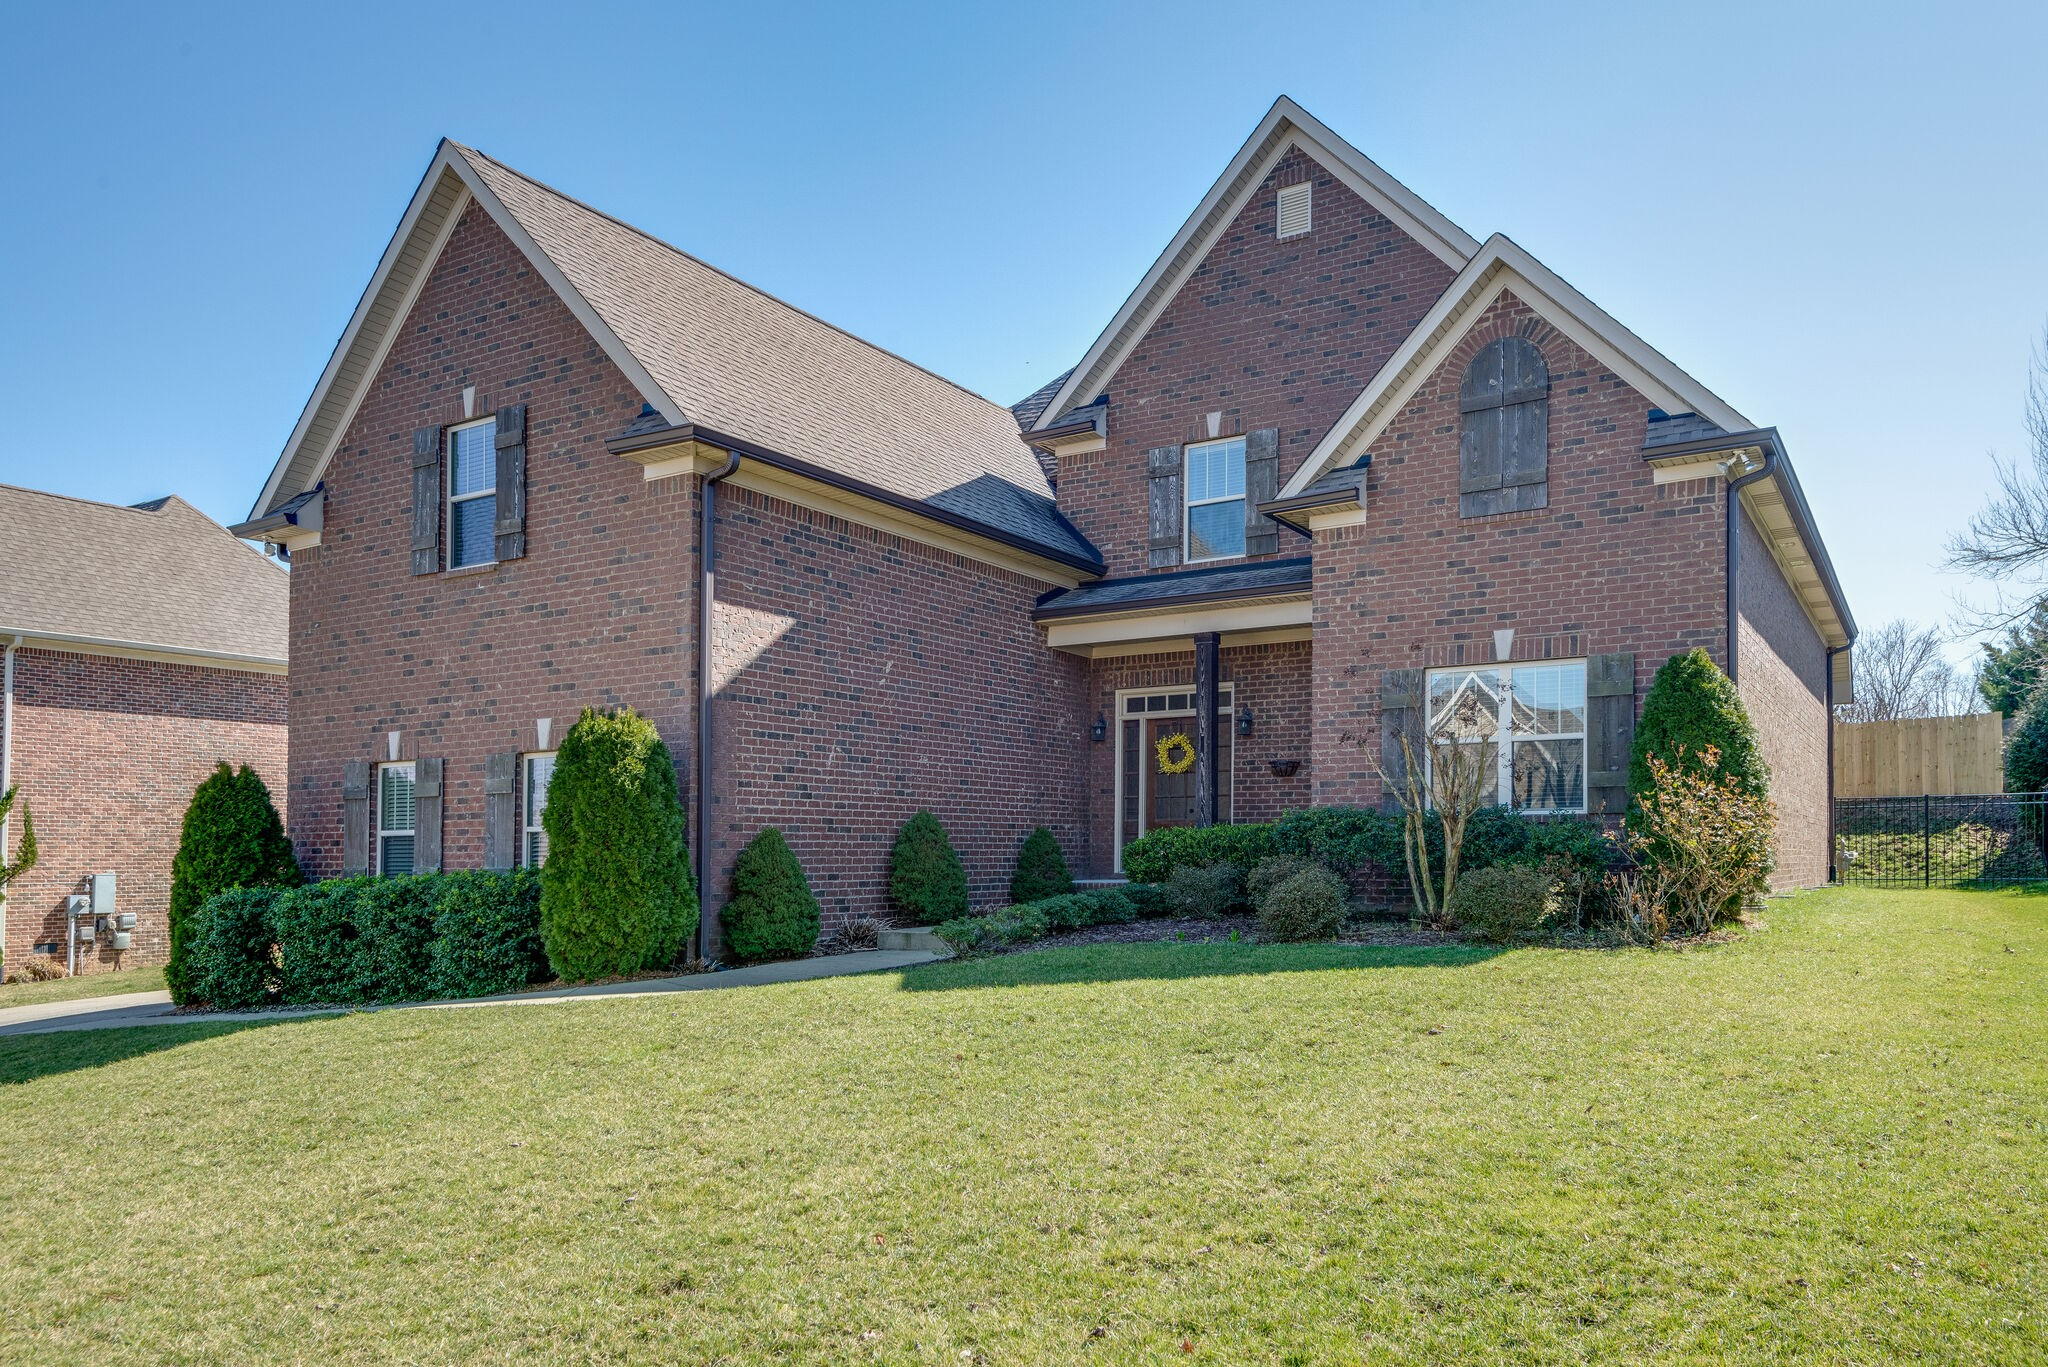 1026 Nealcrest Cir Property Photo - Spring Hill, TN real estate listing